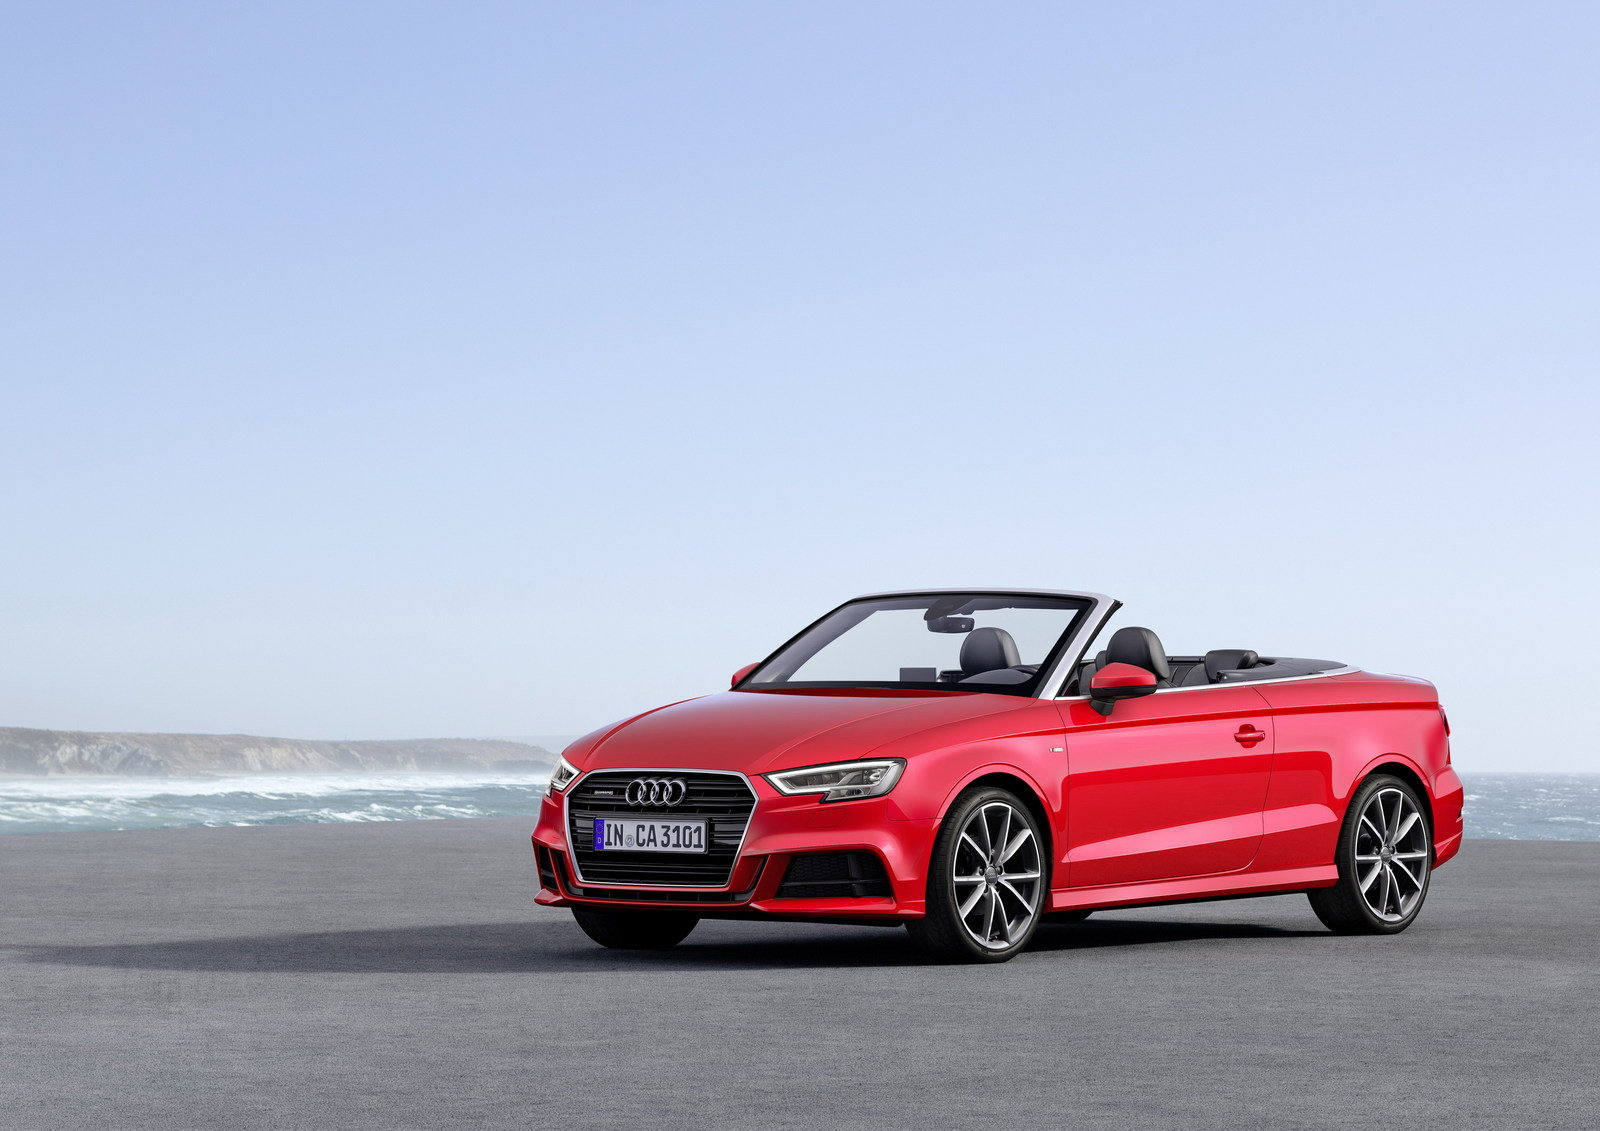 2017 audi a3 convertible picture 671807 car review top speed. Black Bedroom Furniture Sets. Home Design Ideas